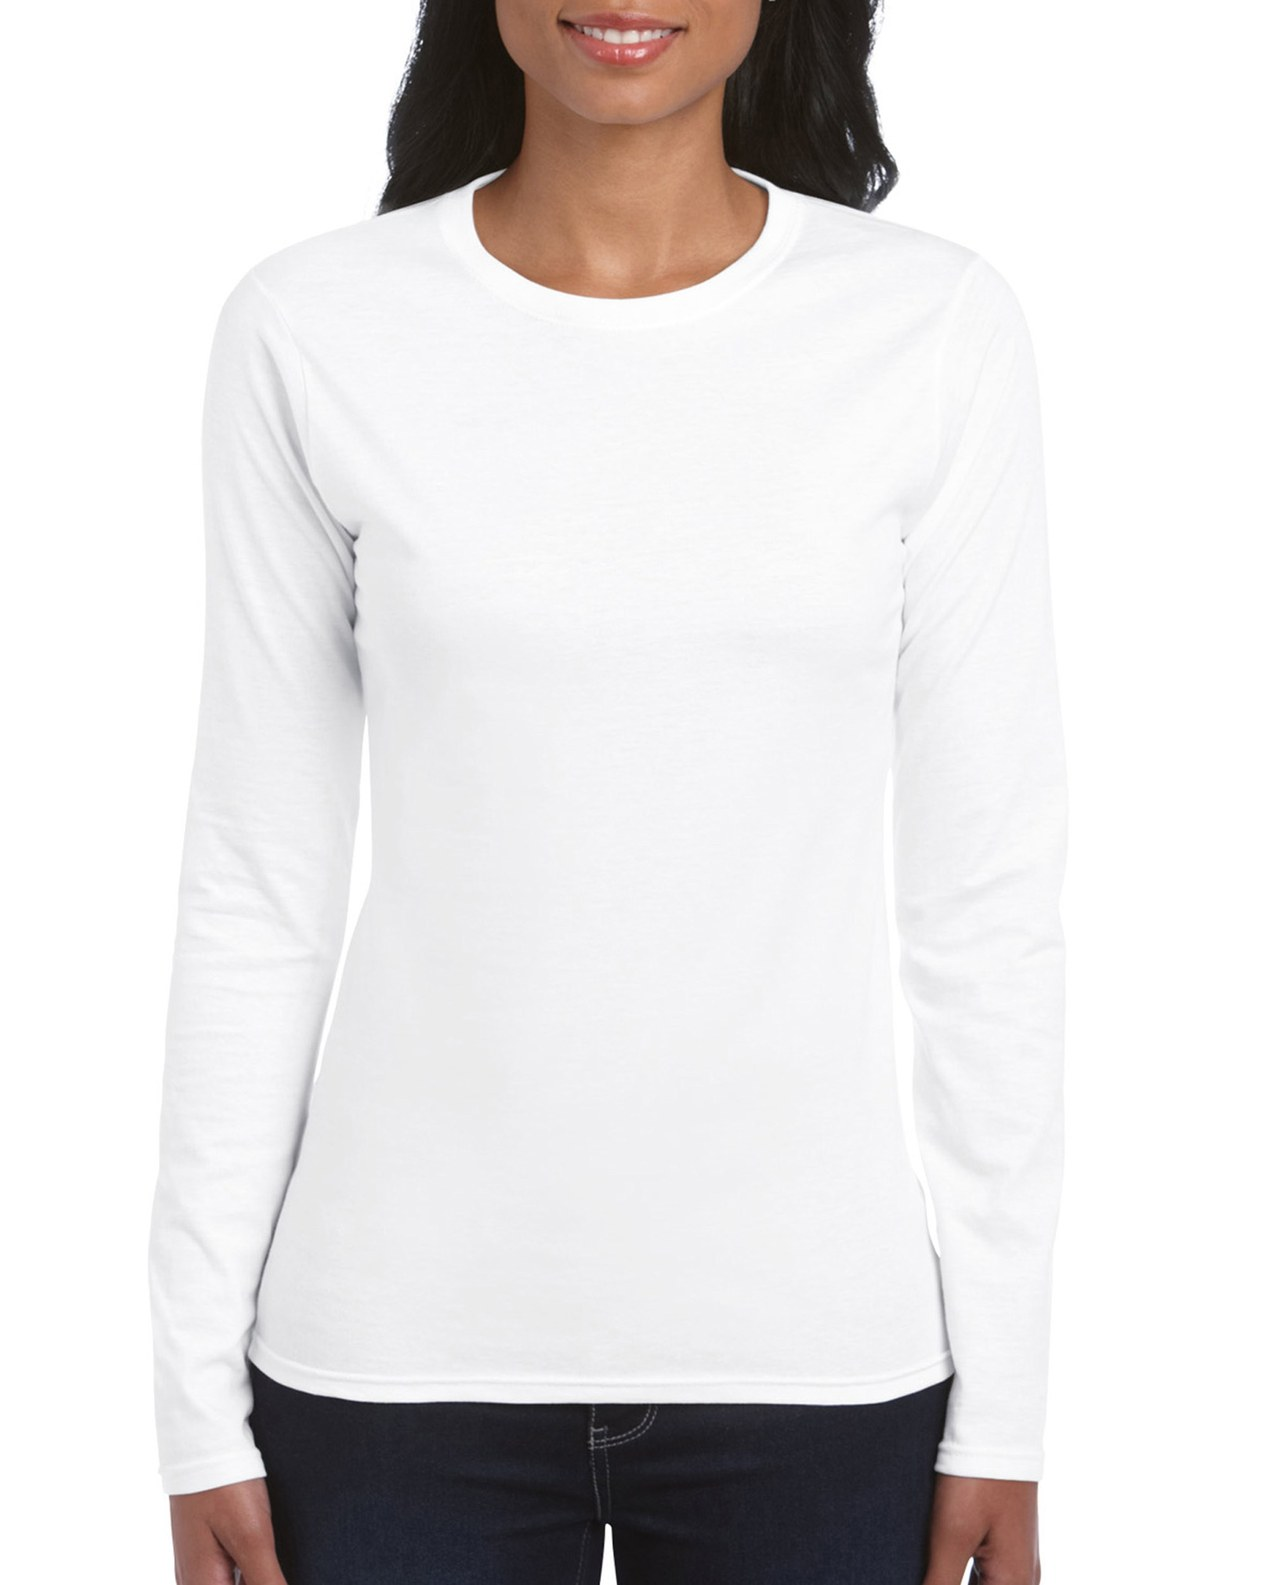 Free shipping and returns on Women's Long Sleeve Tops at vanduload.tk